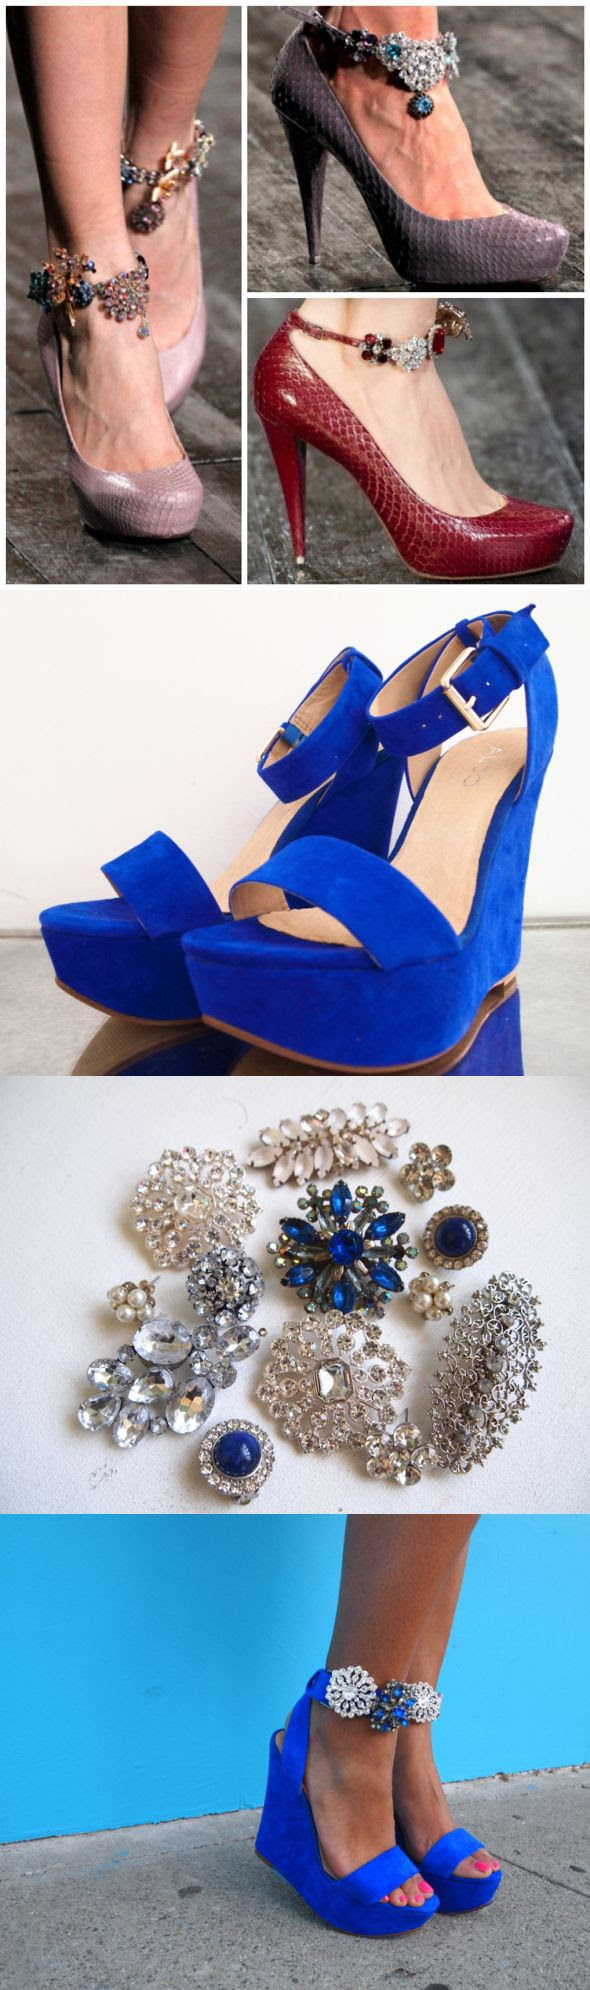 ankle straps (just remember that ankle straps break up the leg line and make it look shorter)